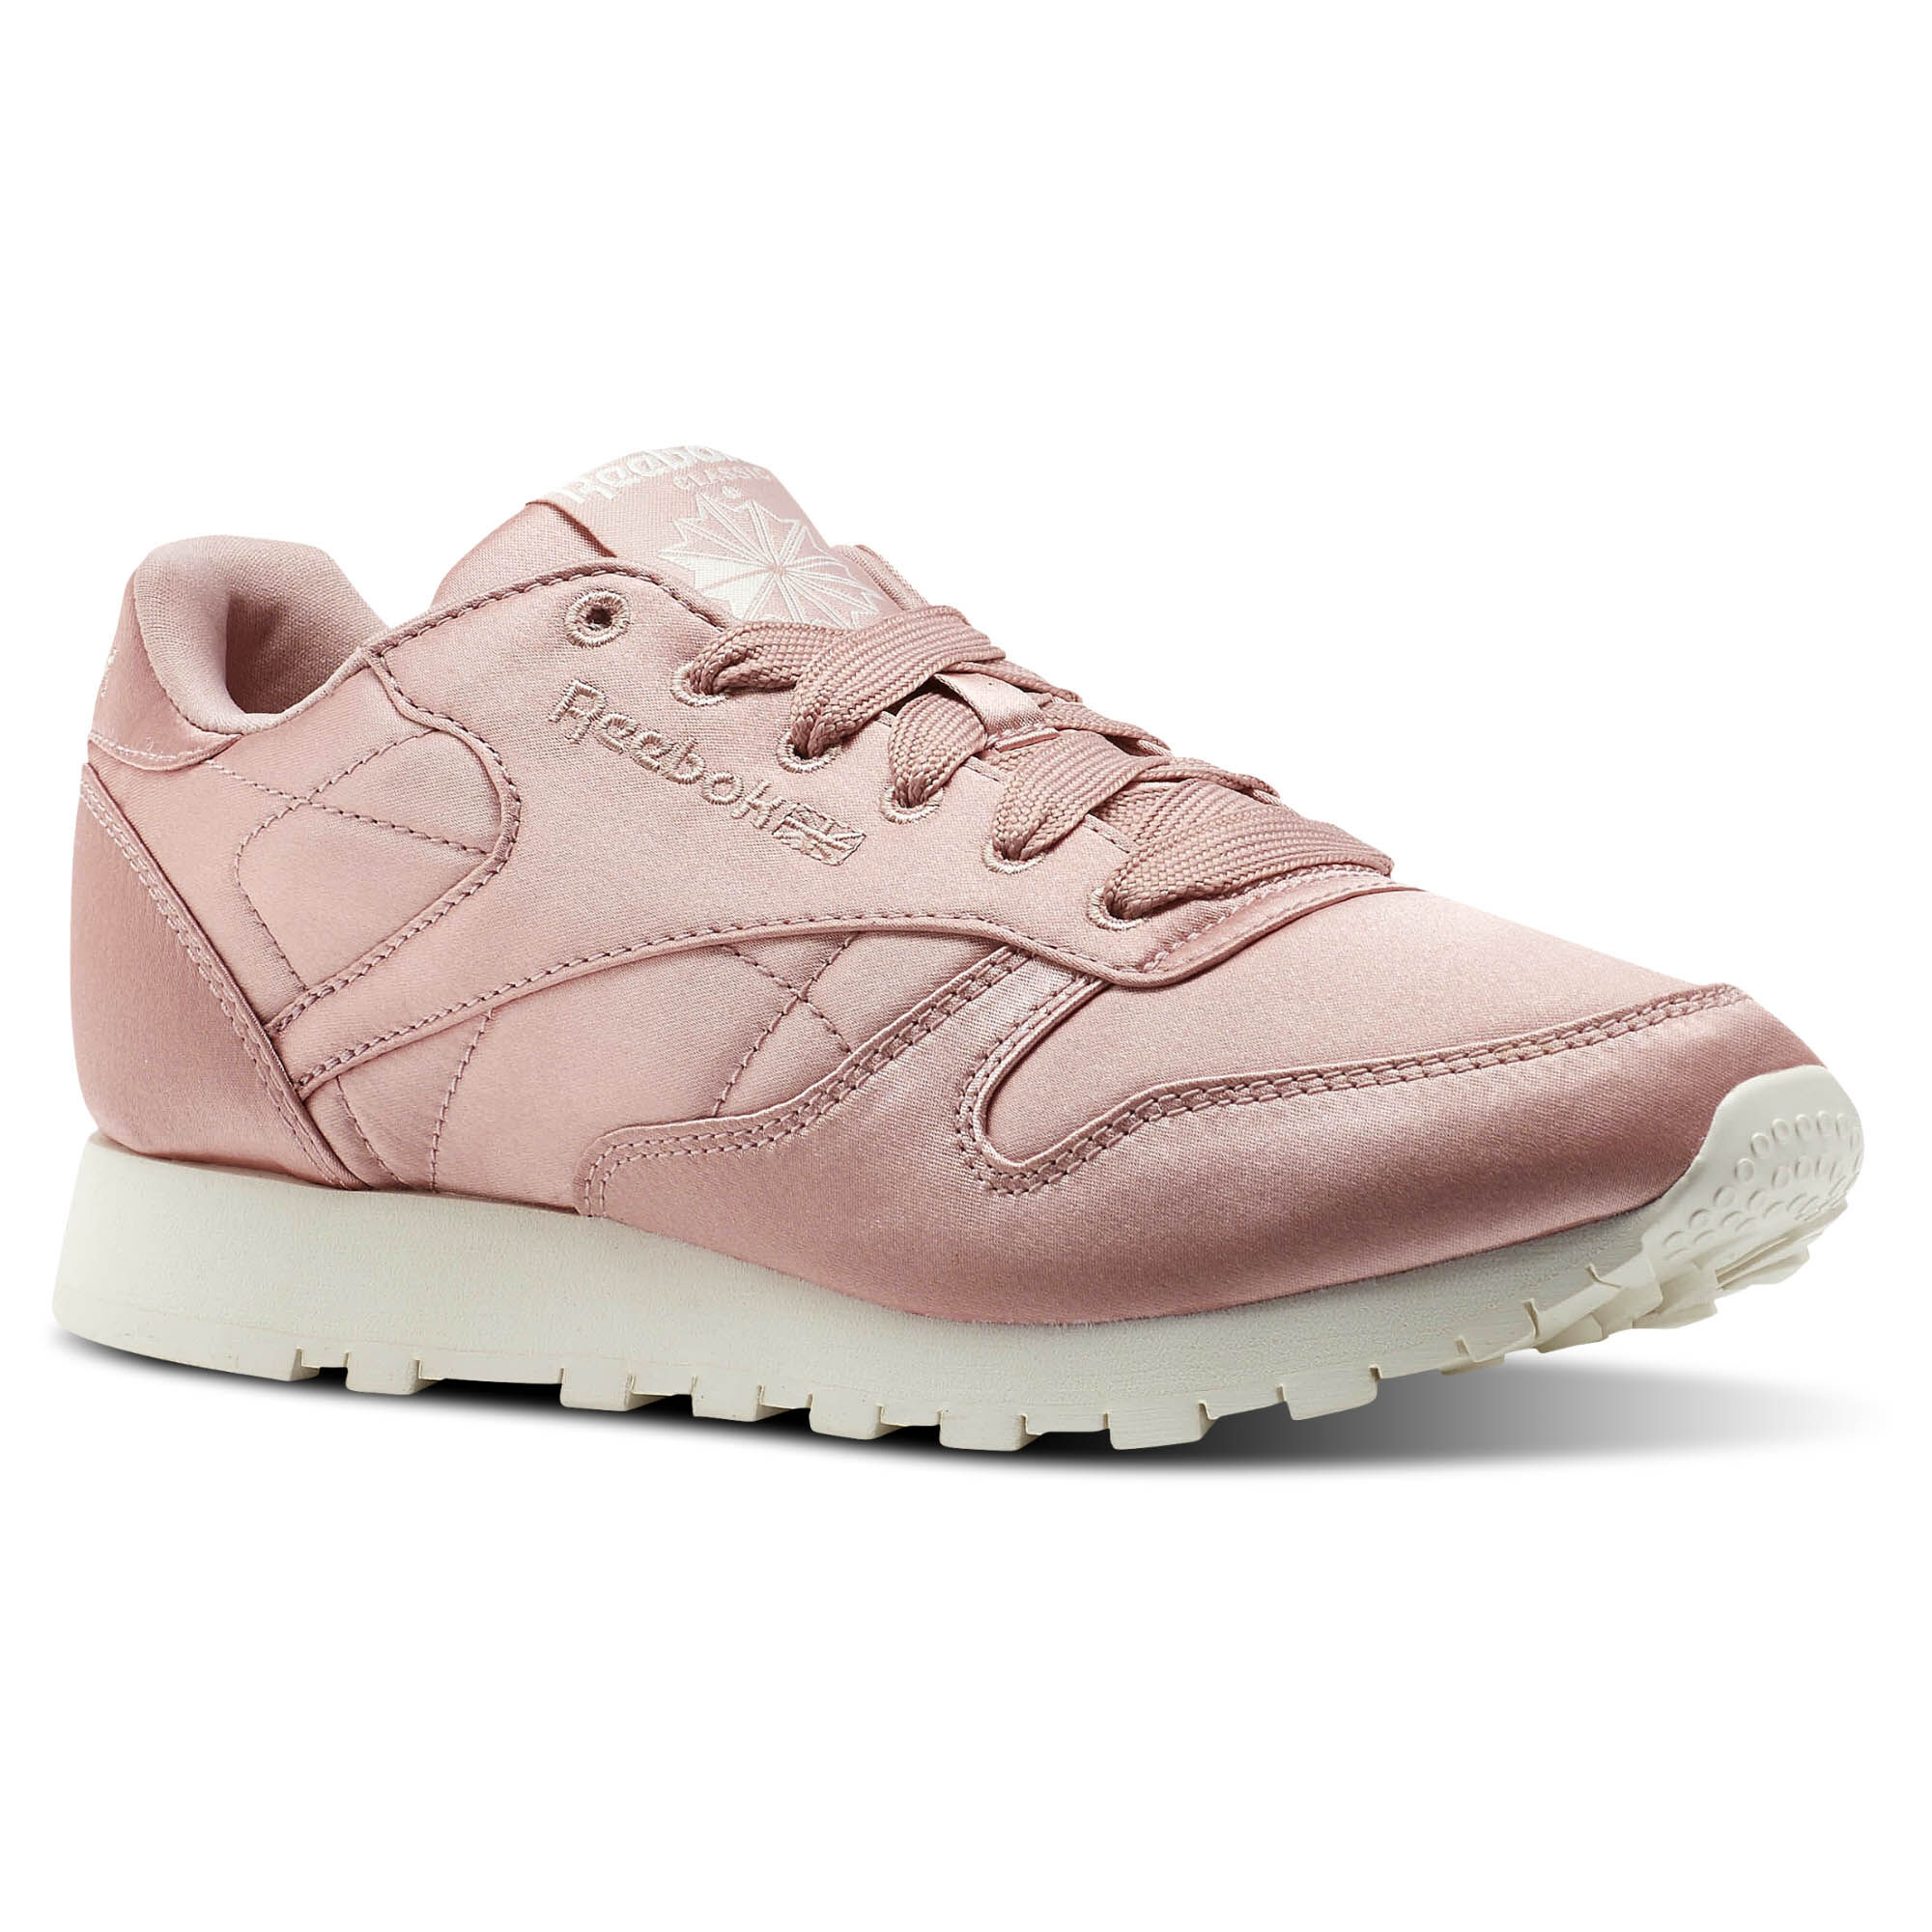 Womens Classic Leather Satin Low-Top Sneakers, Pink/White Reebok